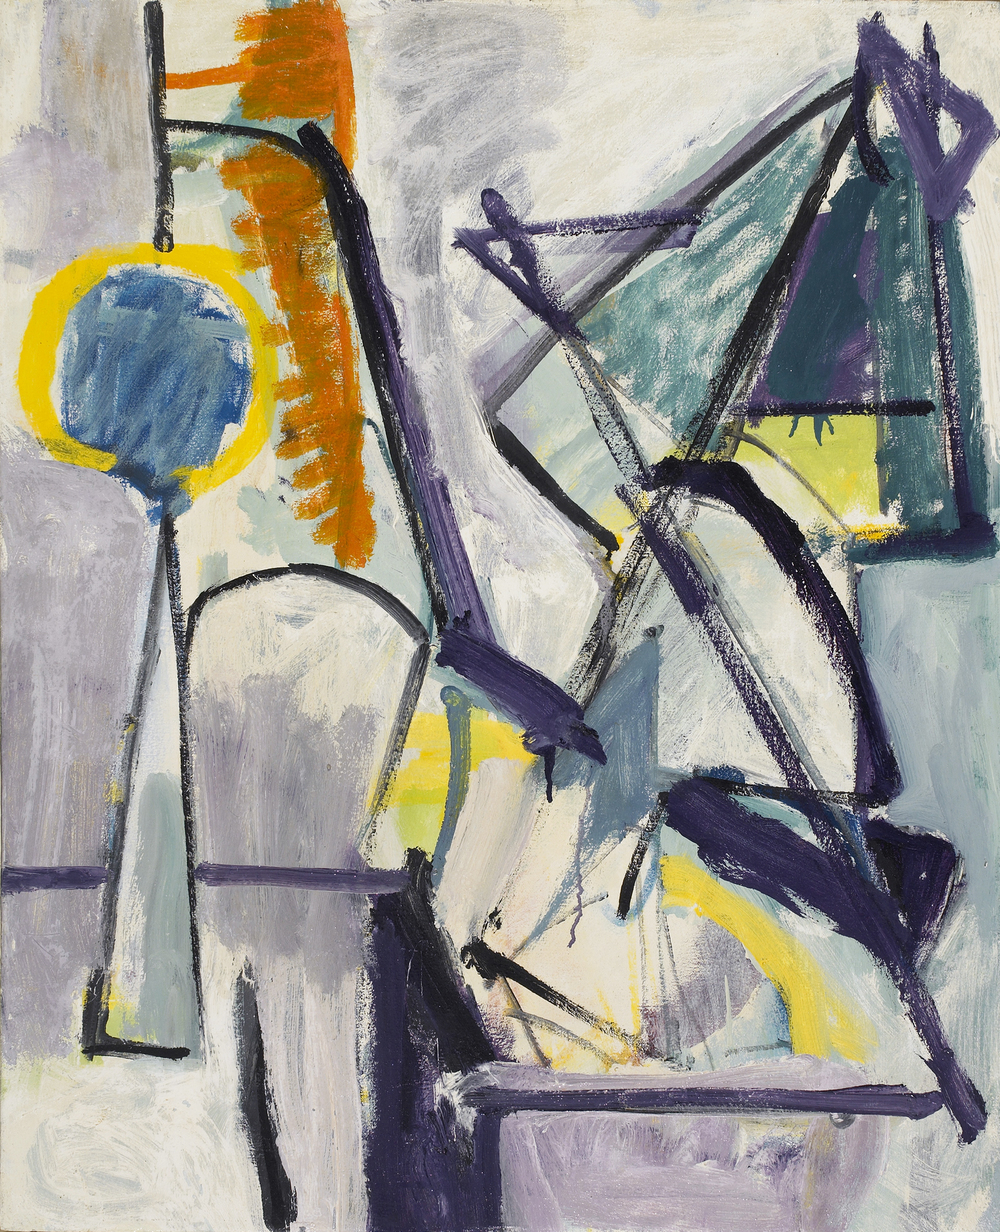 Still Life, 1948, oil on canvas, 30 x 24 inches